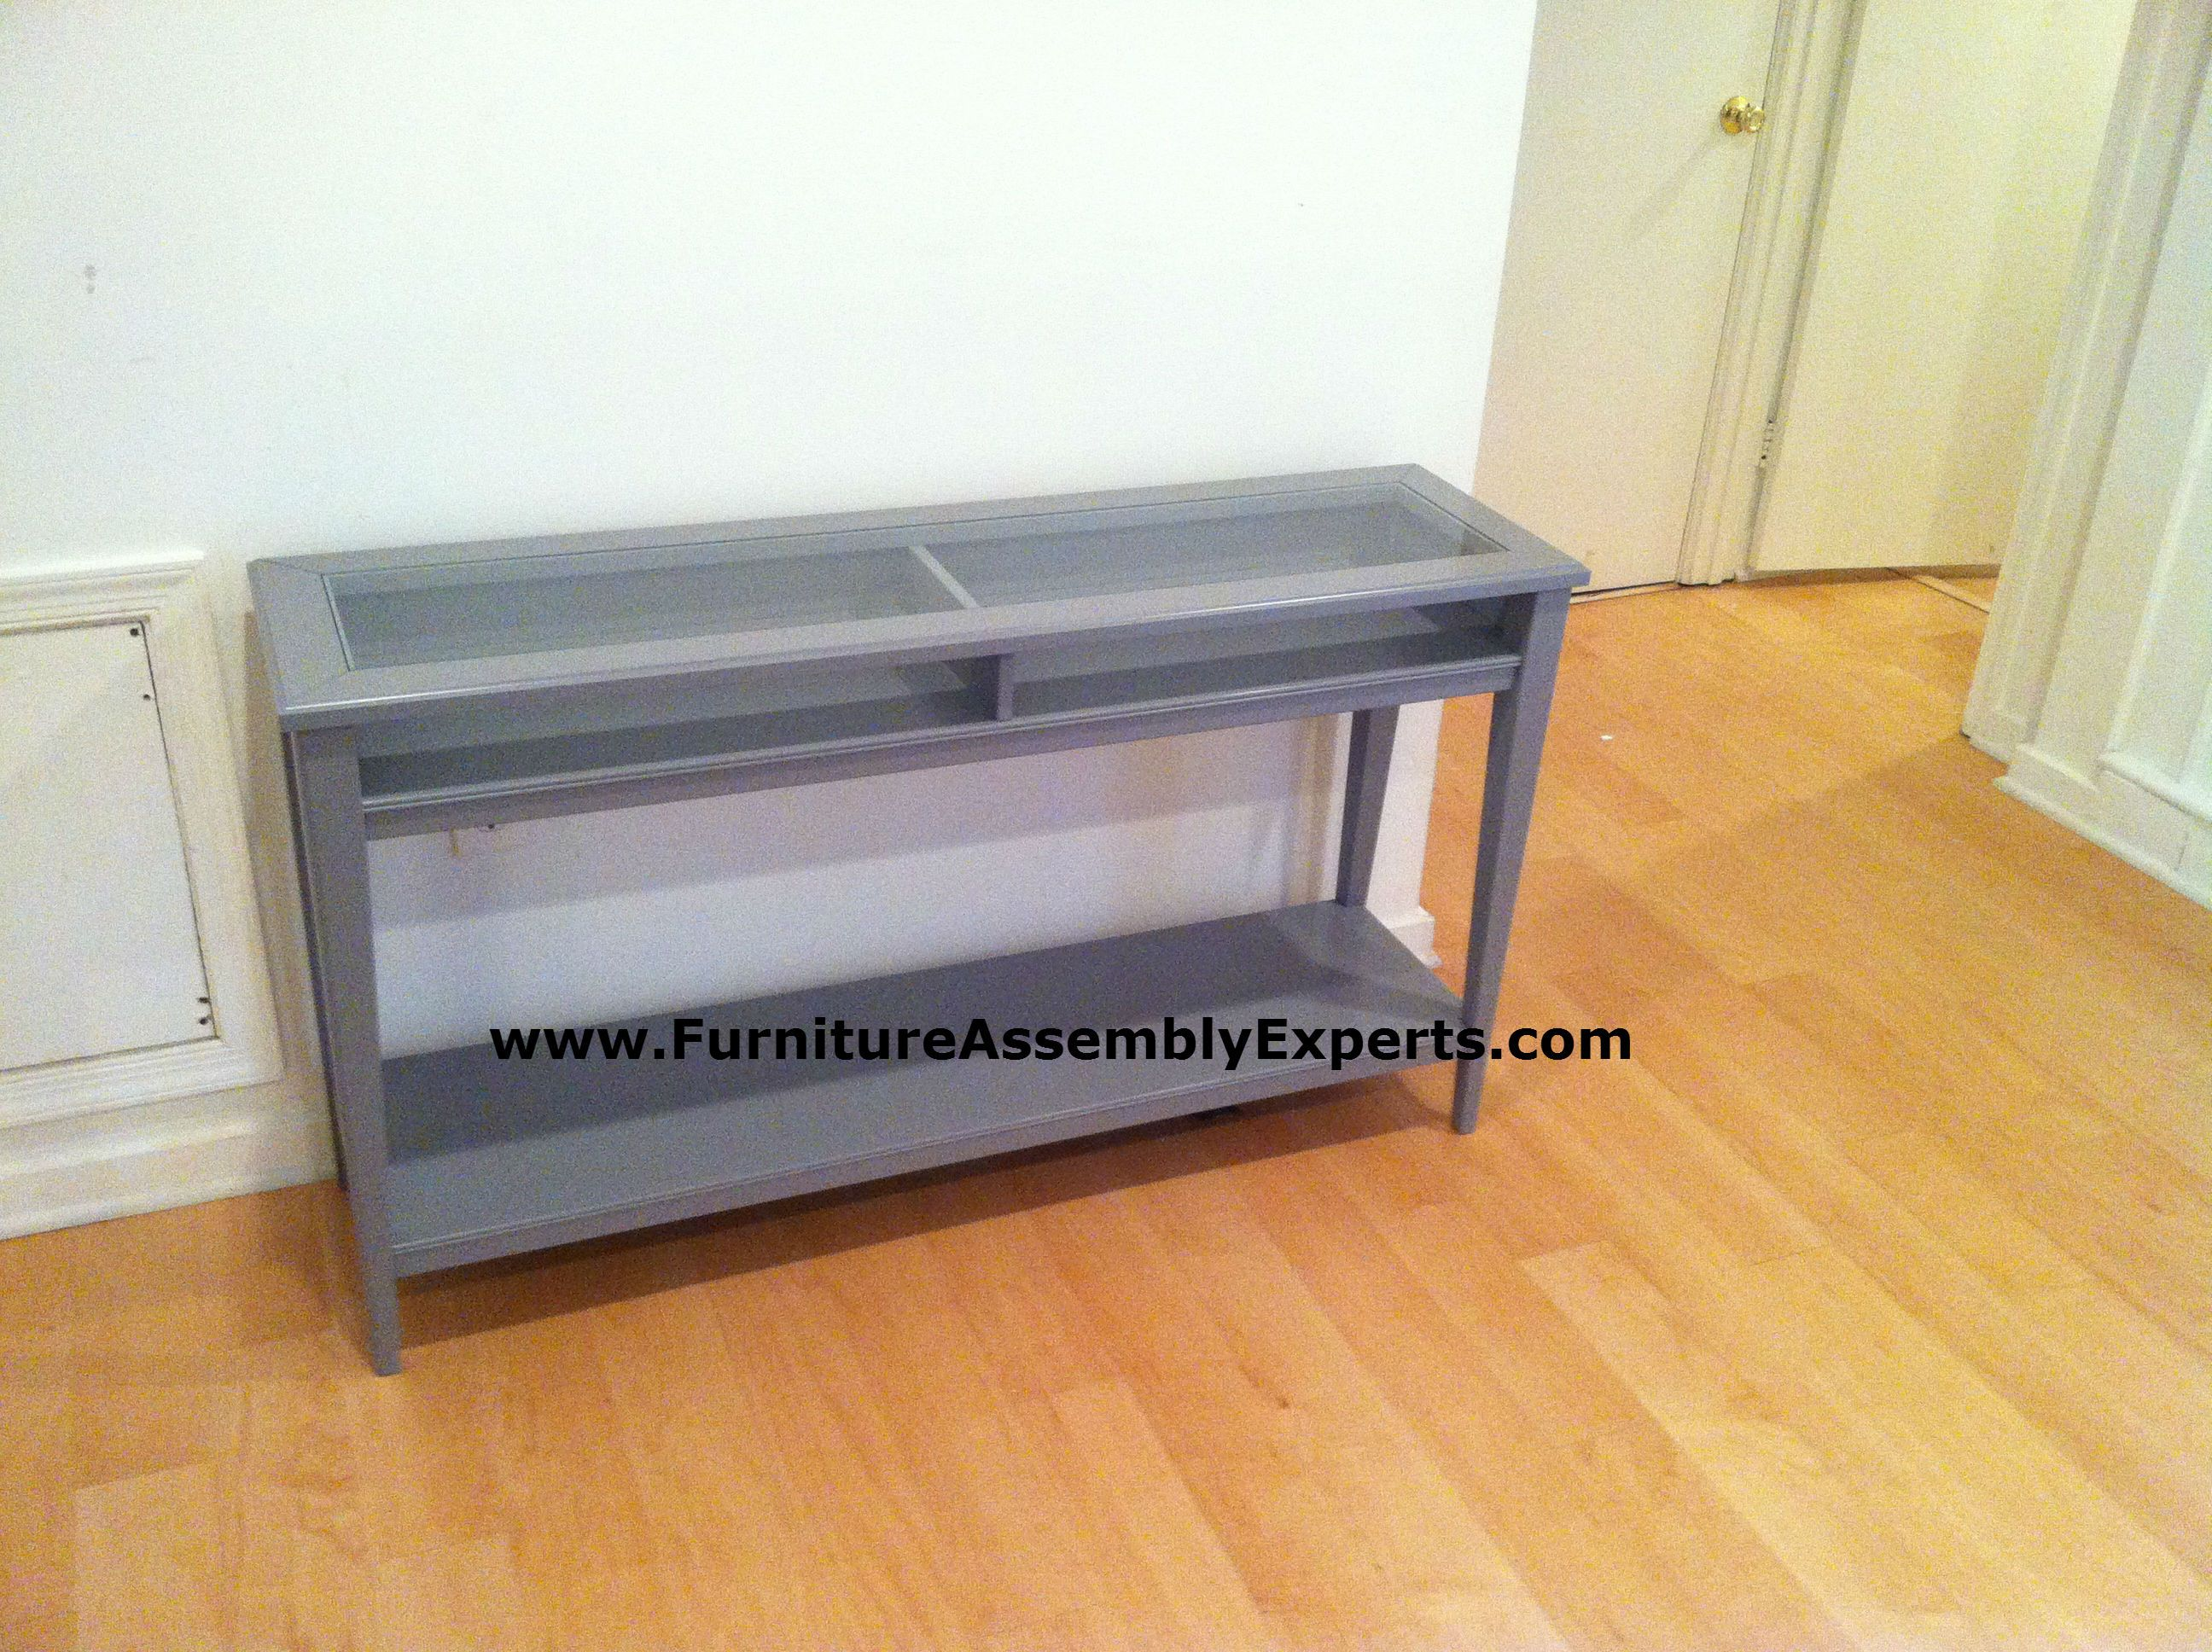 assembly bunk youtube experts furniture by bed disassembly watch